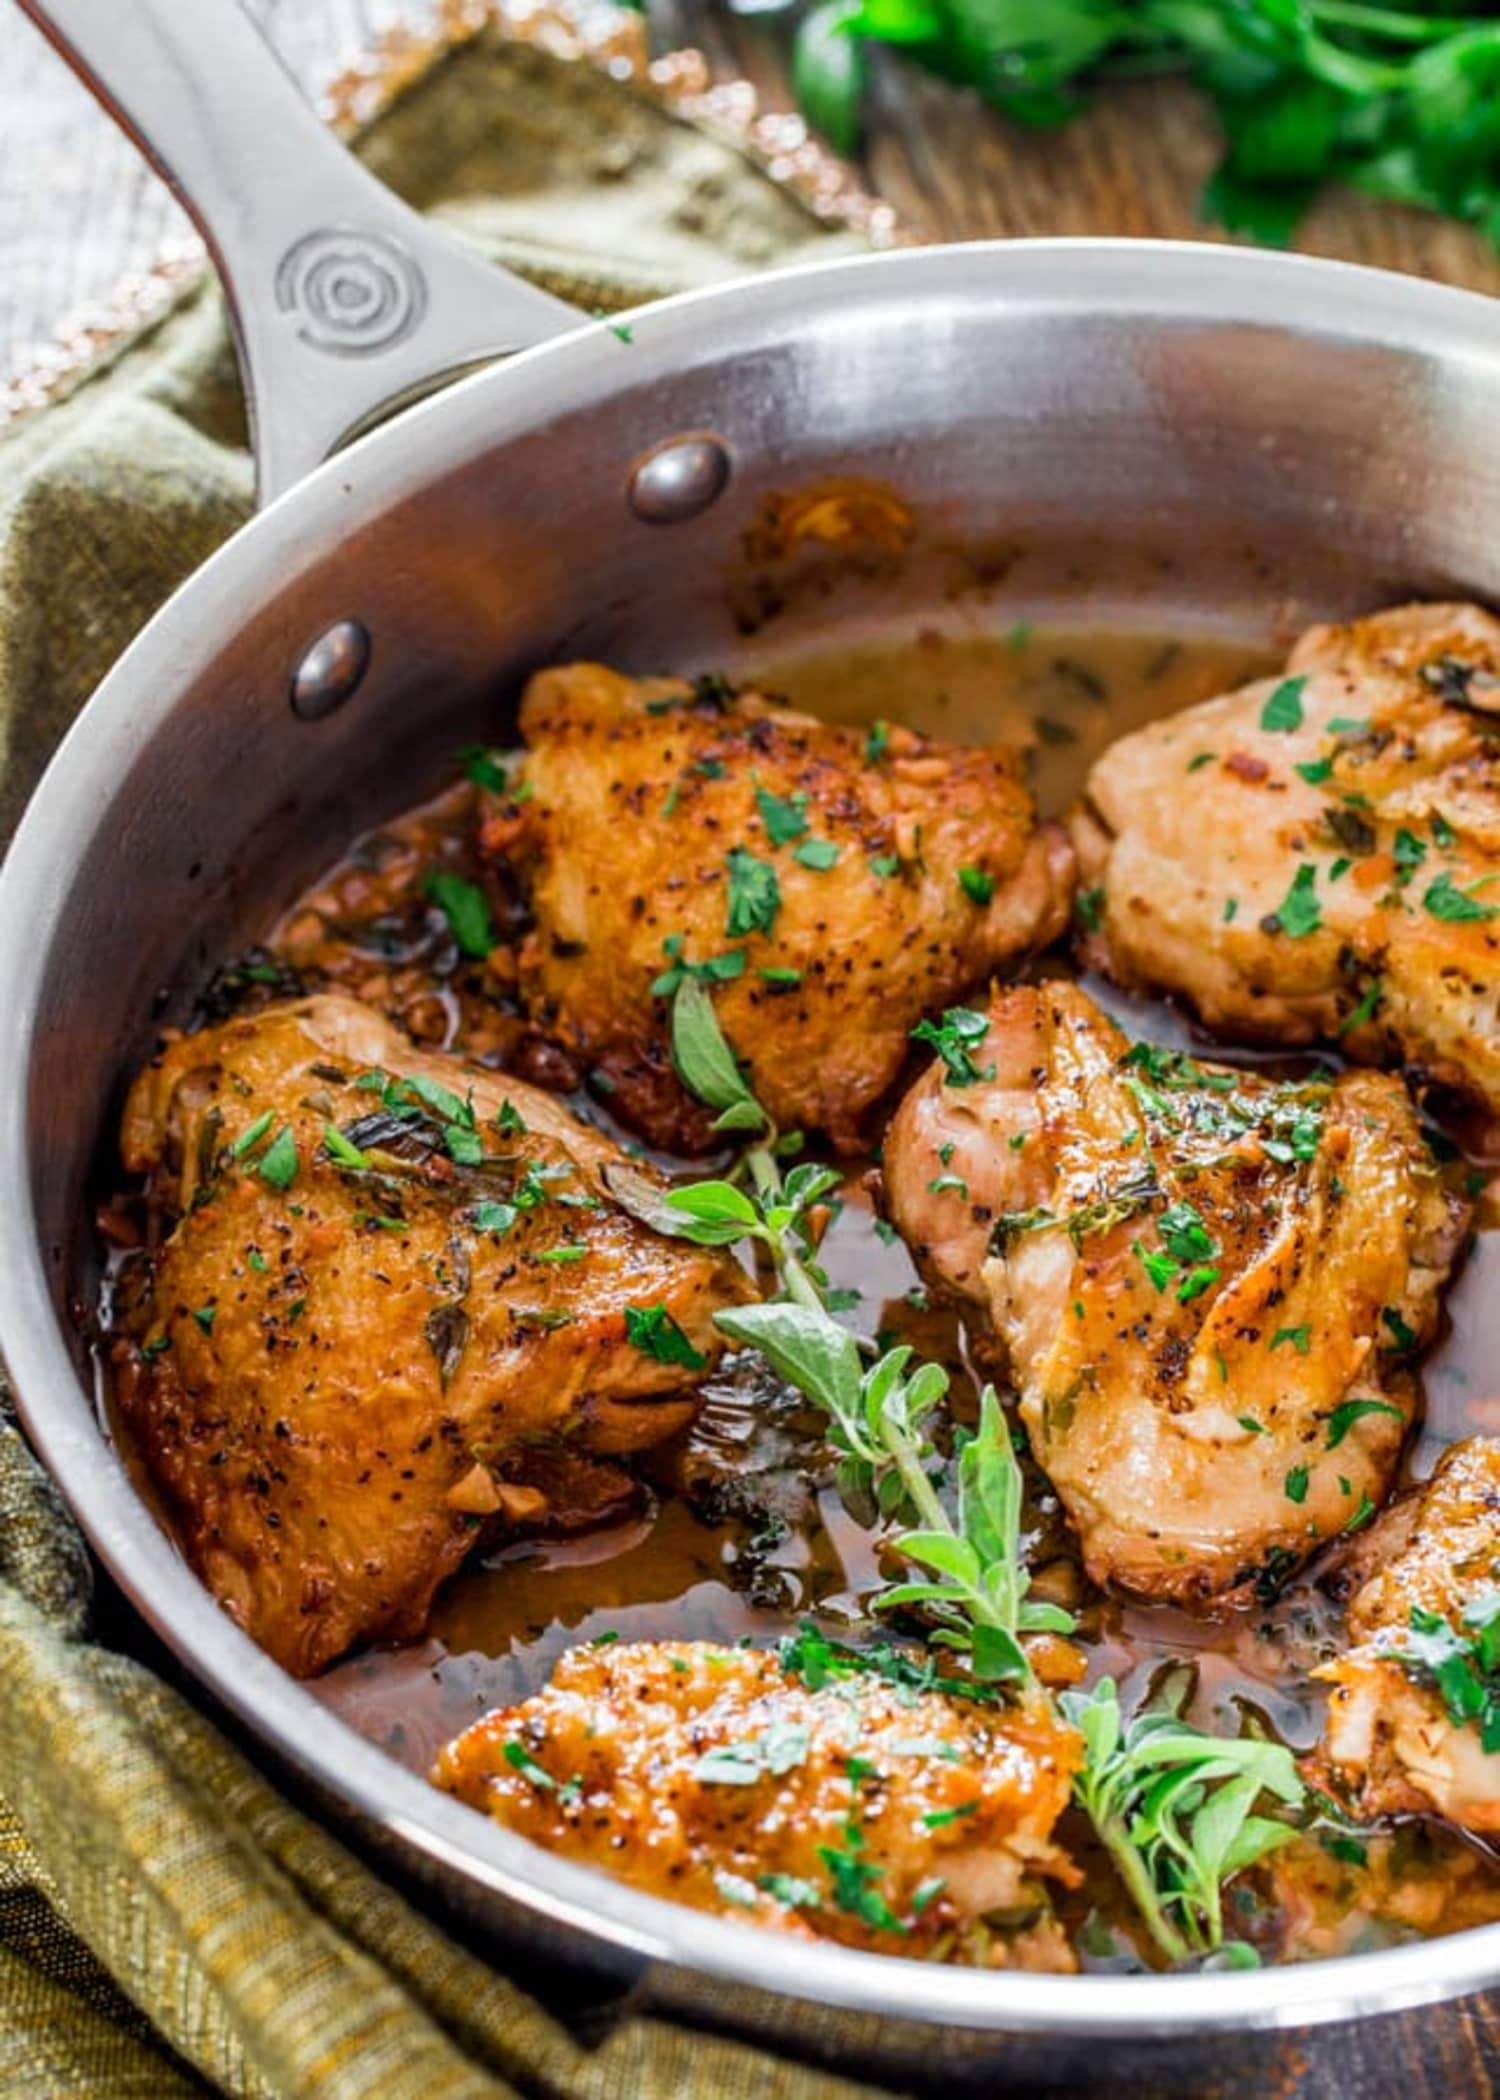 Chicken in Garlic and Herb Sauce Is a French-Inspired Dinner